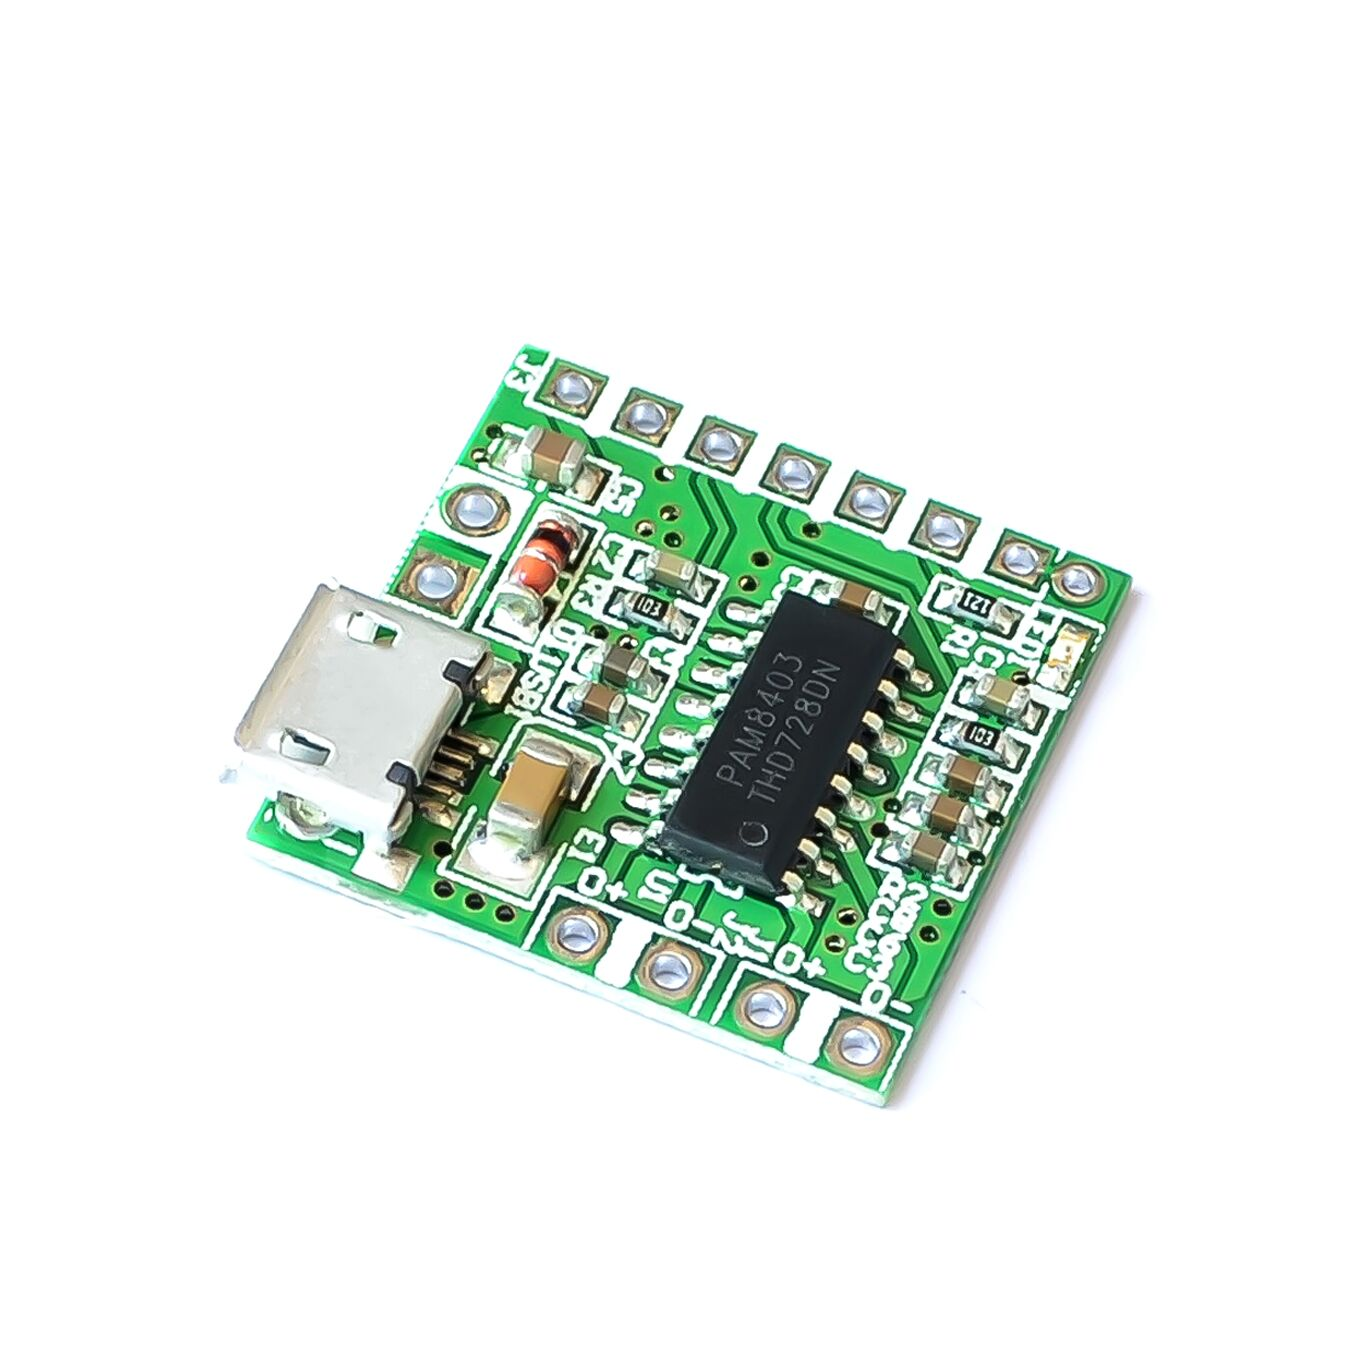 NEW PAM8403 DC 5V Mini Class D <font><b>2x3W</b></font> USB Power <font><b>Amplifier</b></font> Board DIY Bluetooth Speaker image